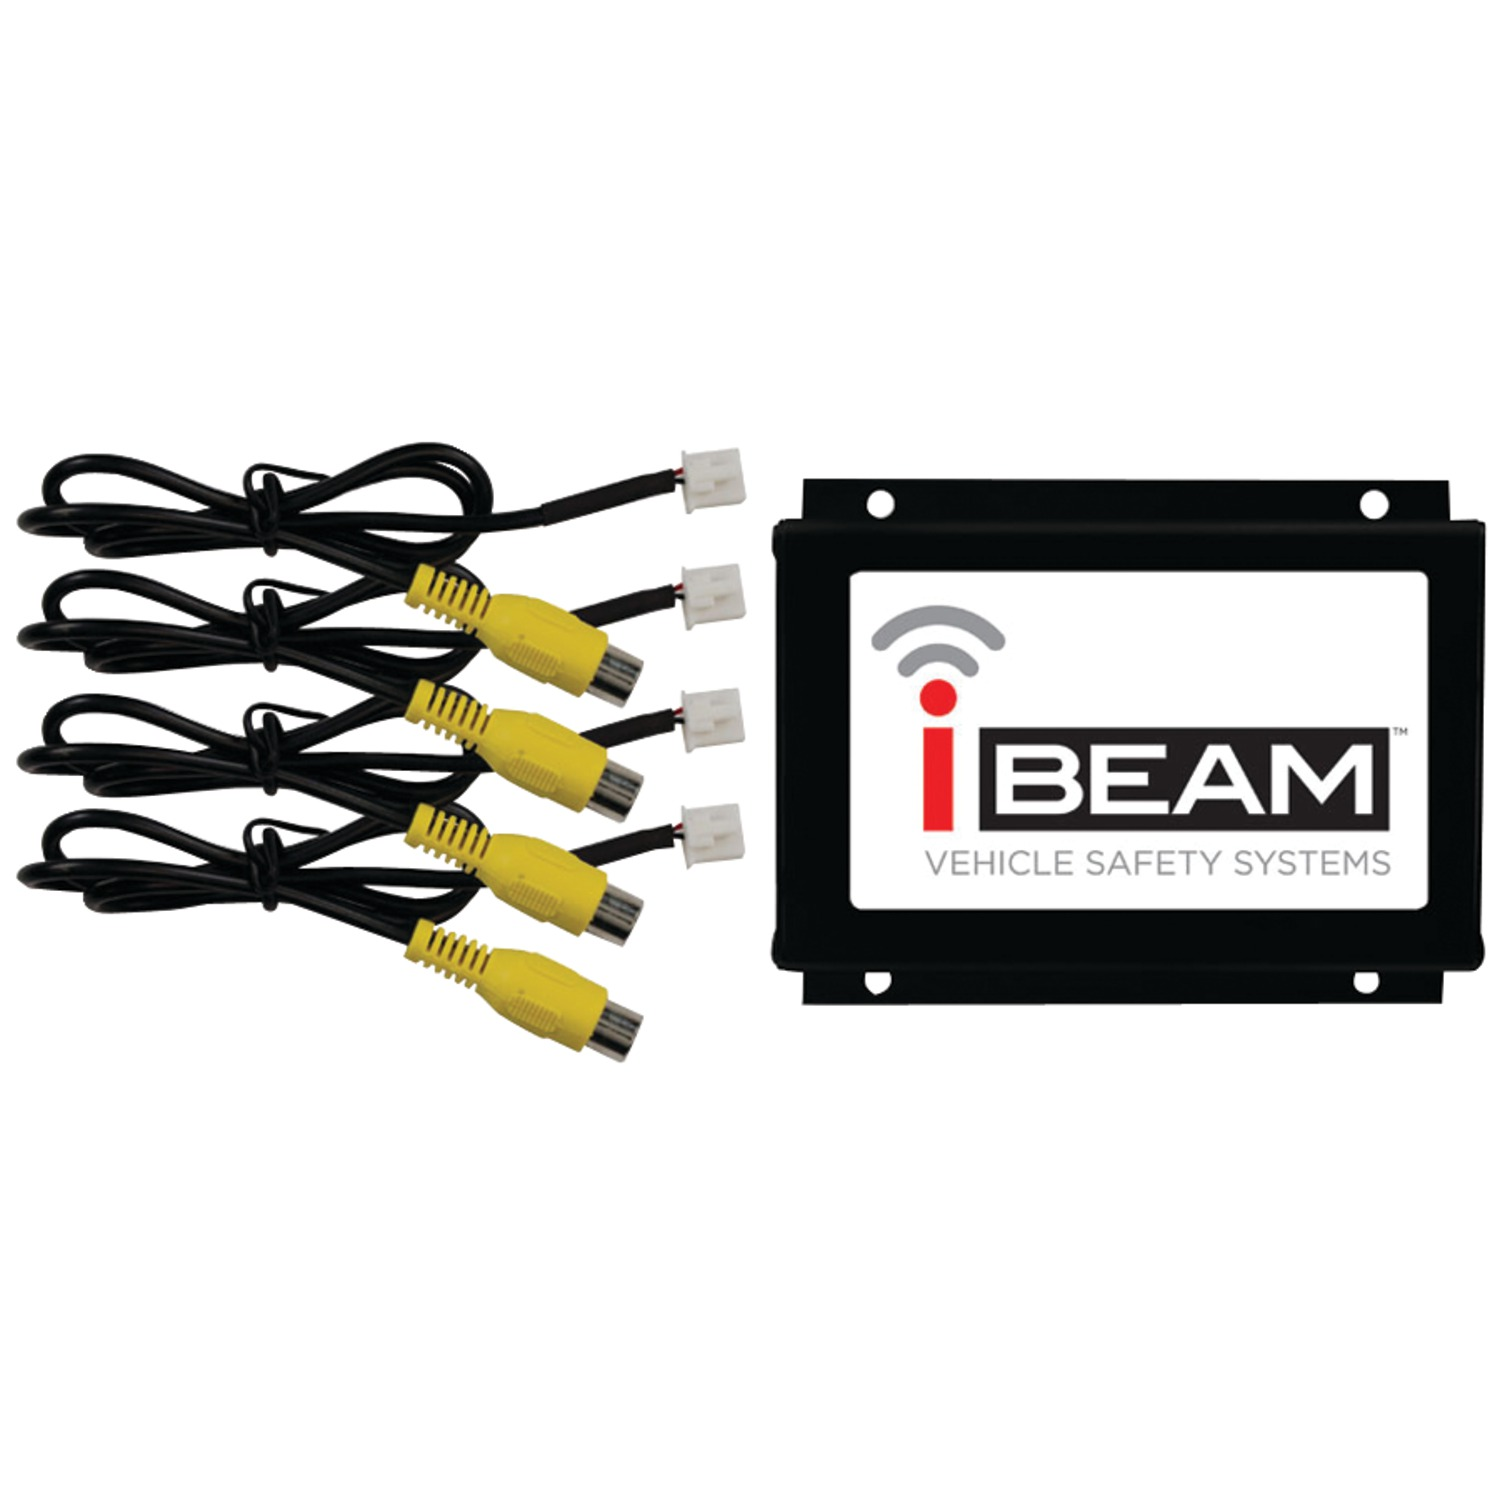 Ibeam Vehicle Safety Systems TE-TSI Turn-signal Video Interface